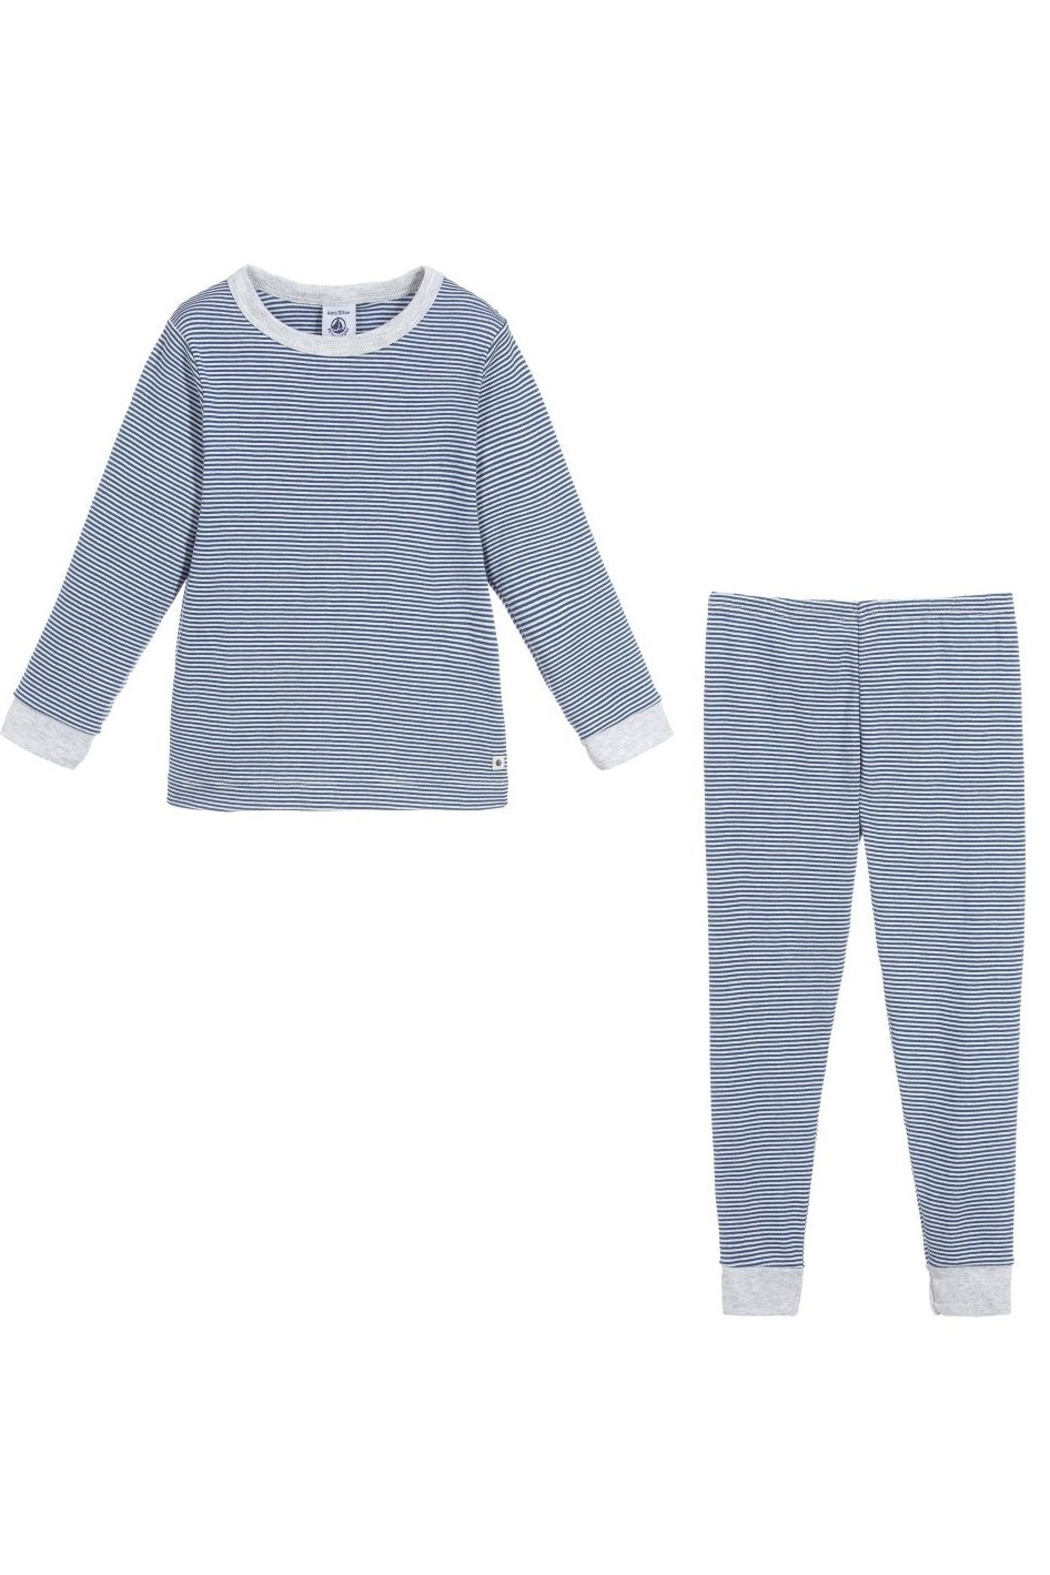 Petit Bateau Boys Pajamas - Milleraies striped knit - Side Cropped Image